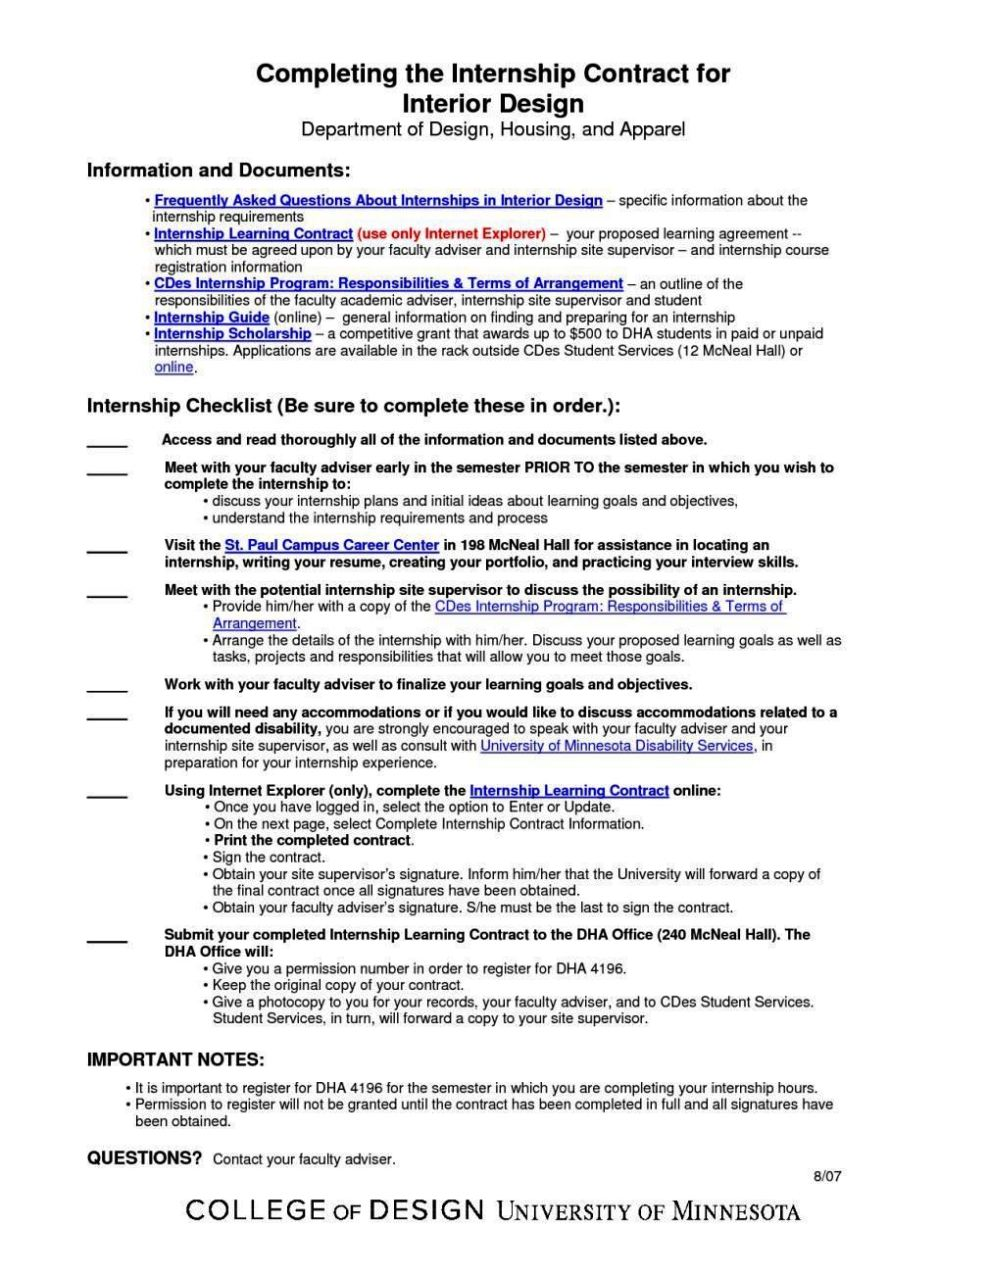 Student learning contract template sampletemplatess for Student contracts templates